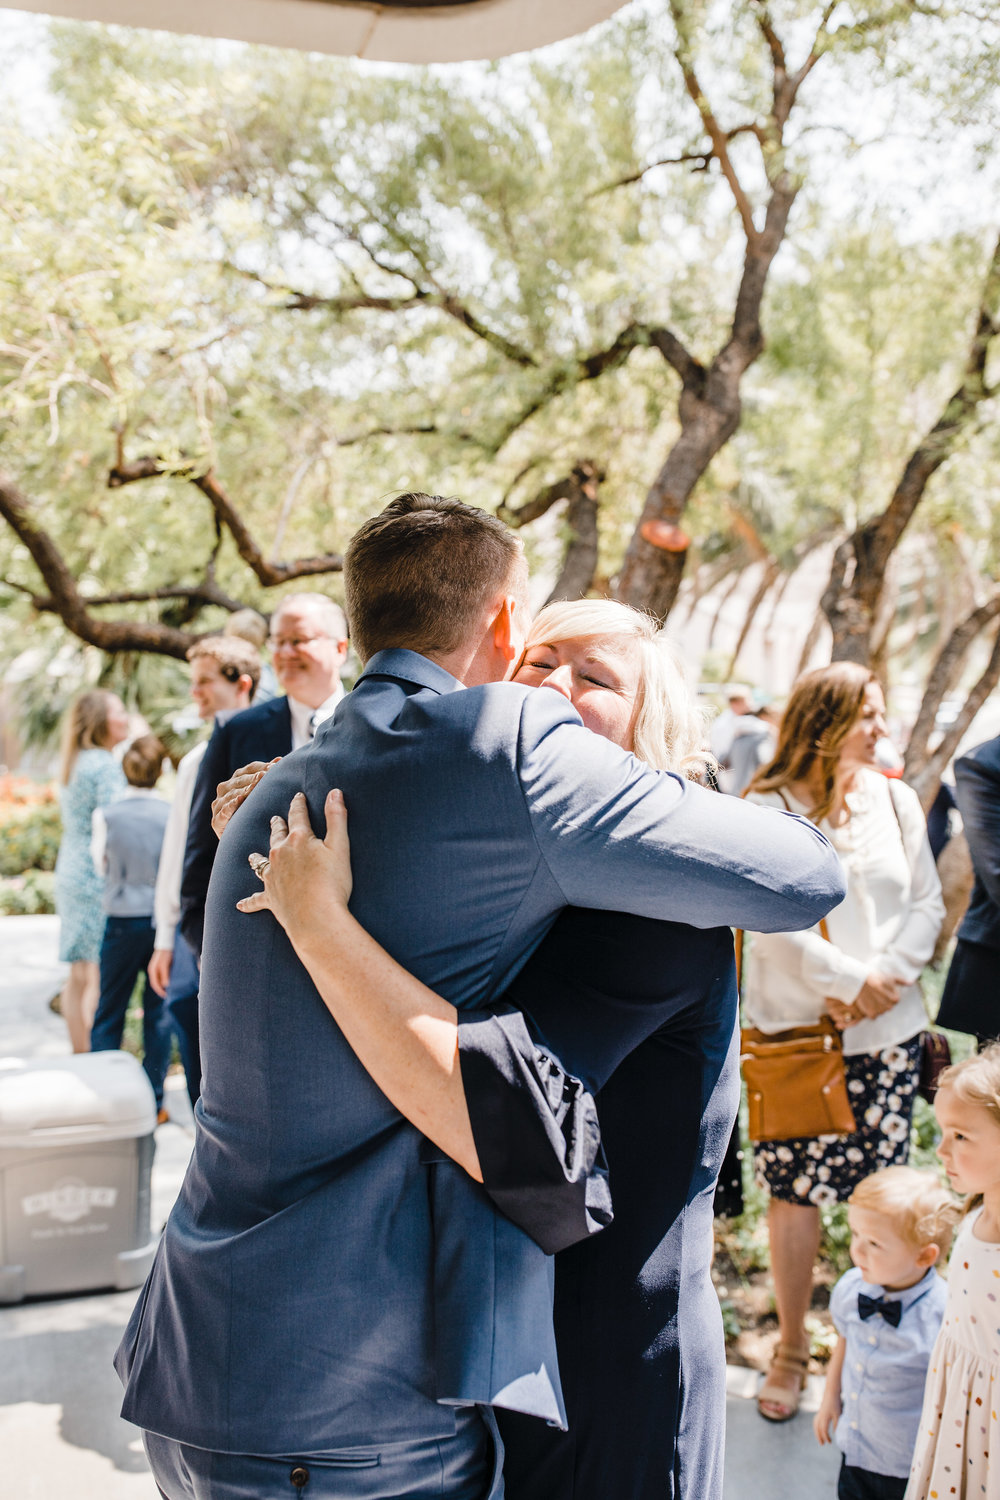 professional las vegas wedding photographer wedding exit celebrating hugging mother of the groom